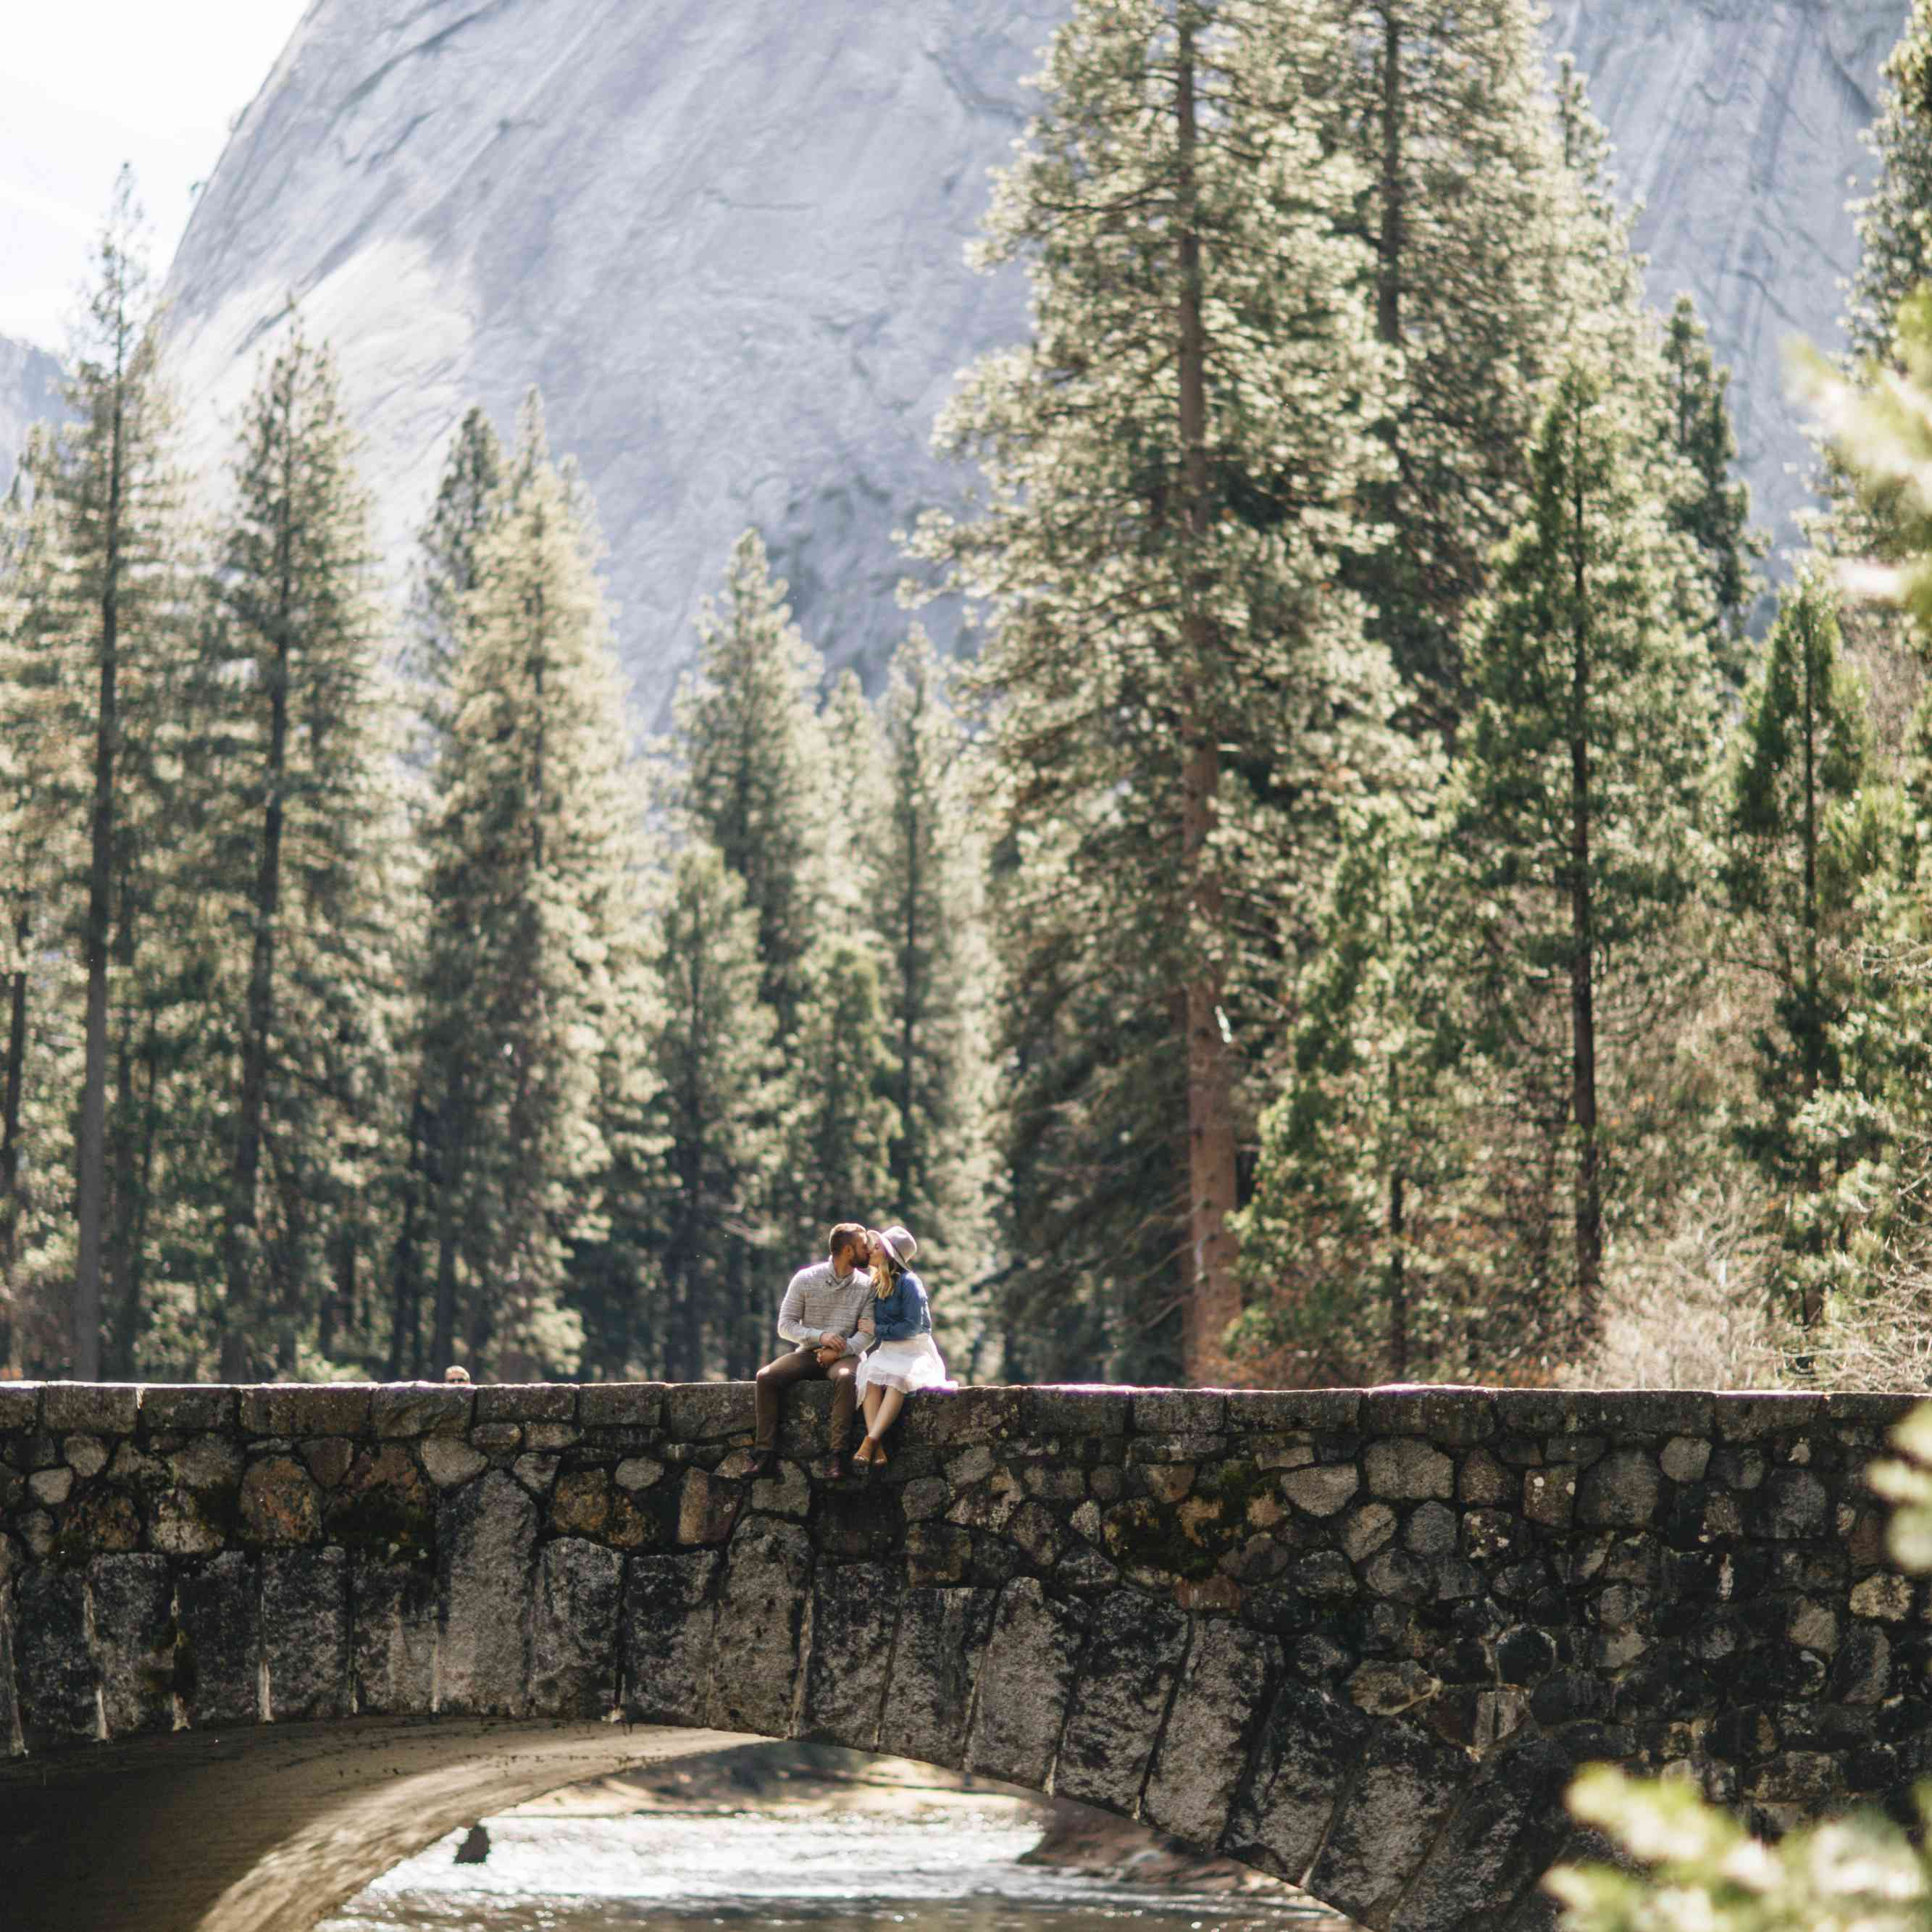 Couple on a bride in the forest and mountains of Yosemite